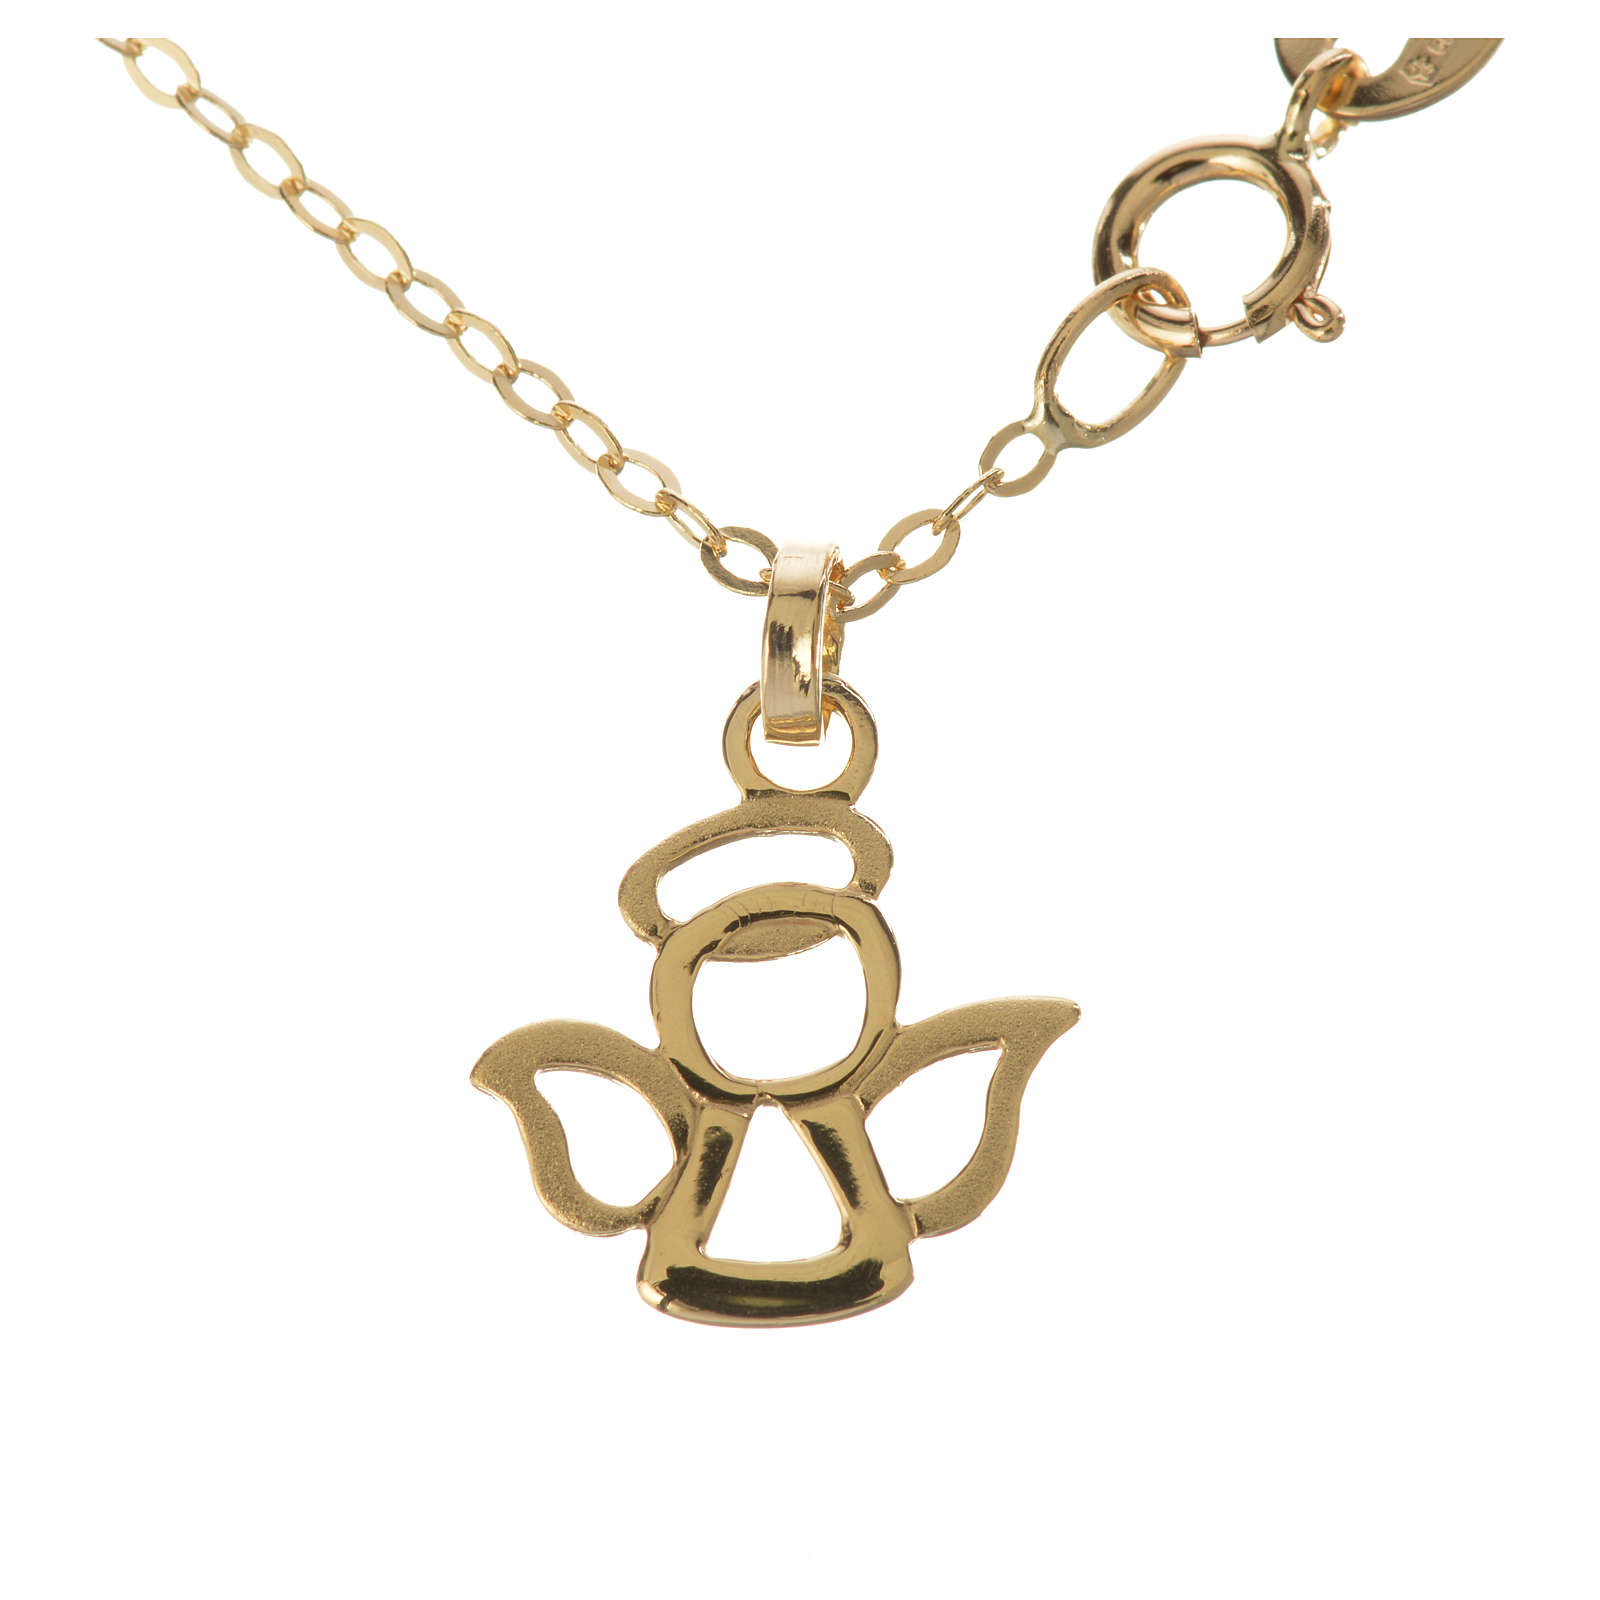 Gold chain with angel pendant in 18k gold 1,42 grams 4